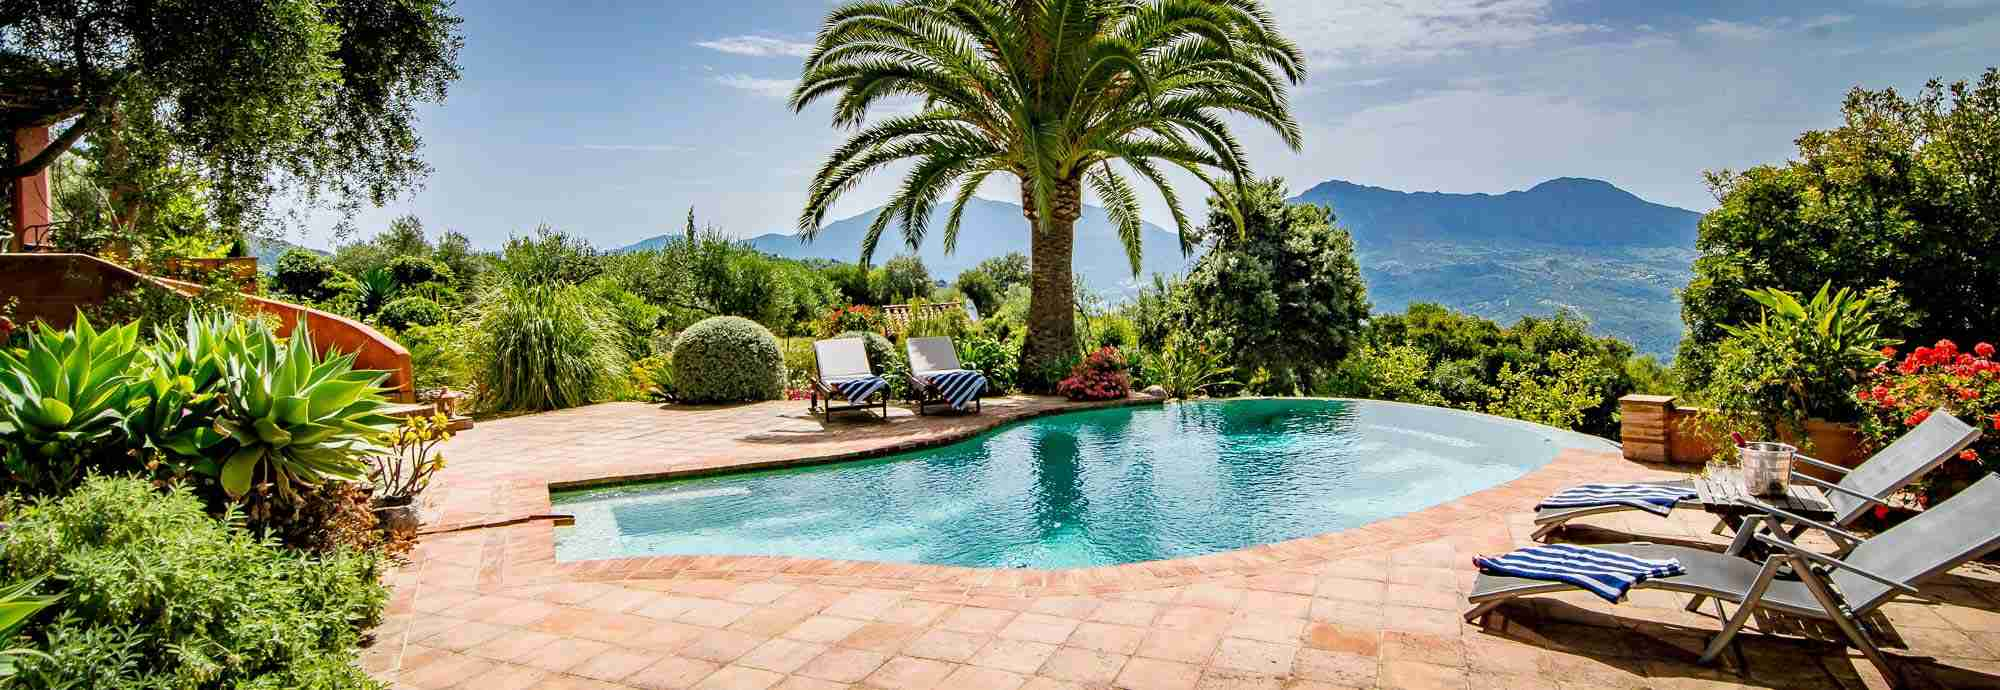 Private Holiday  Villas in Spain with Pools